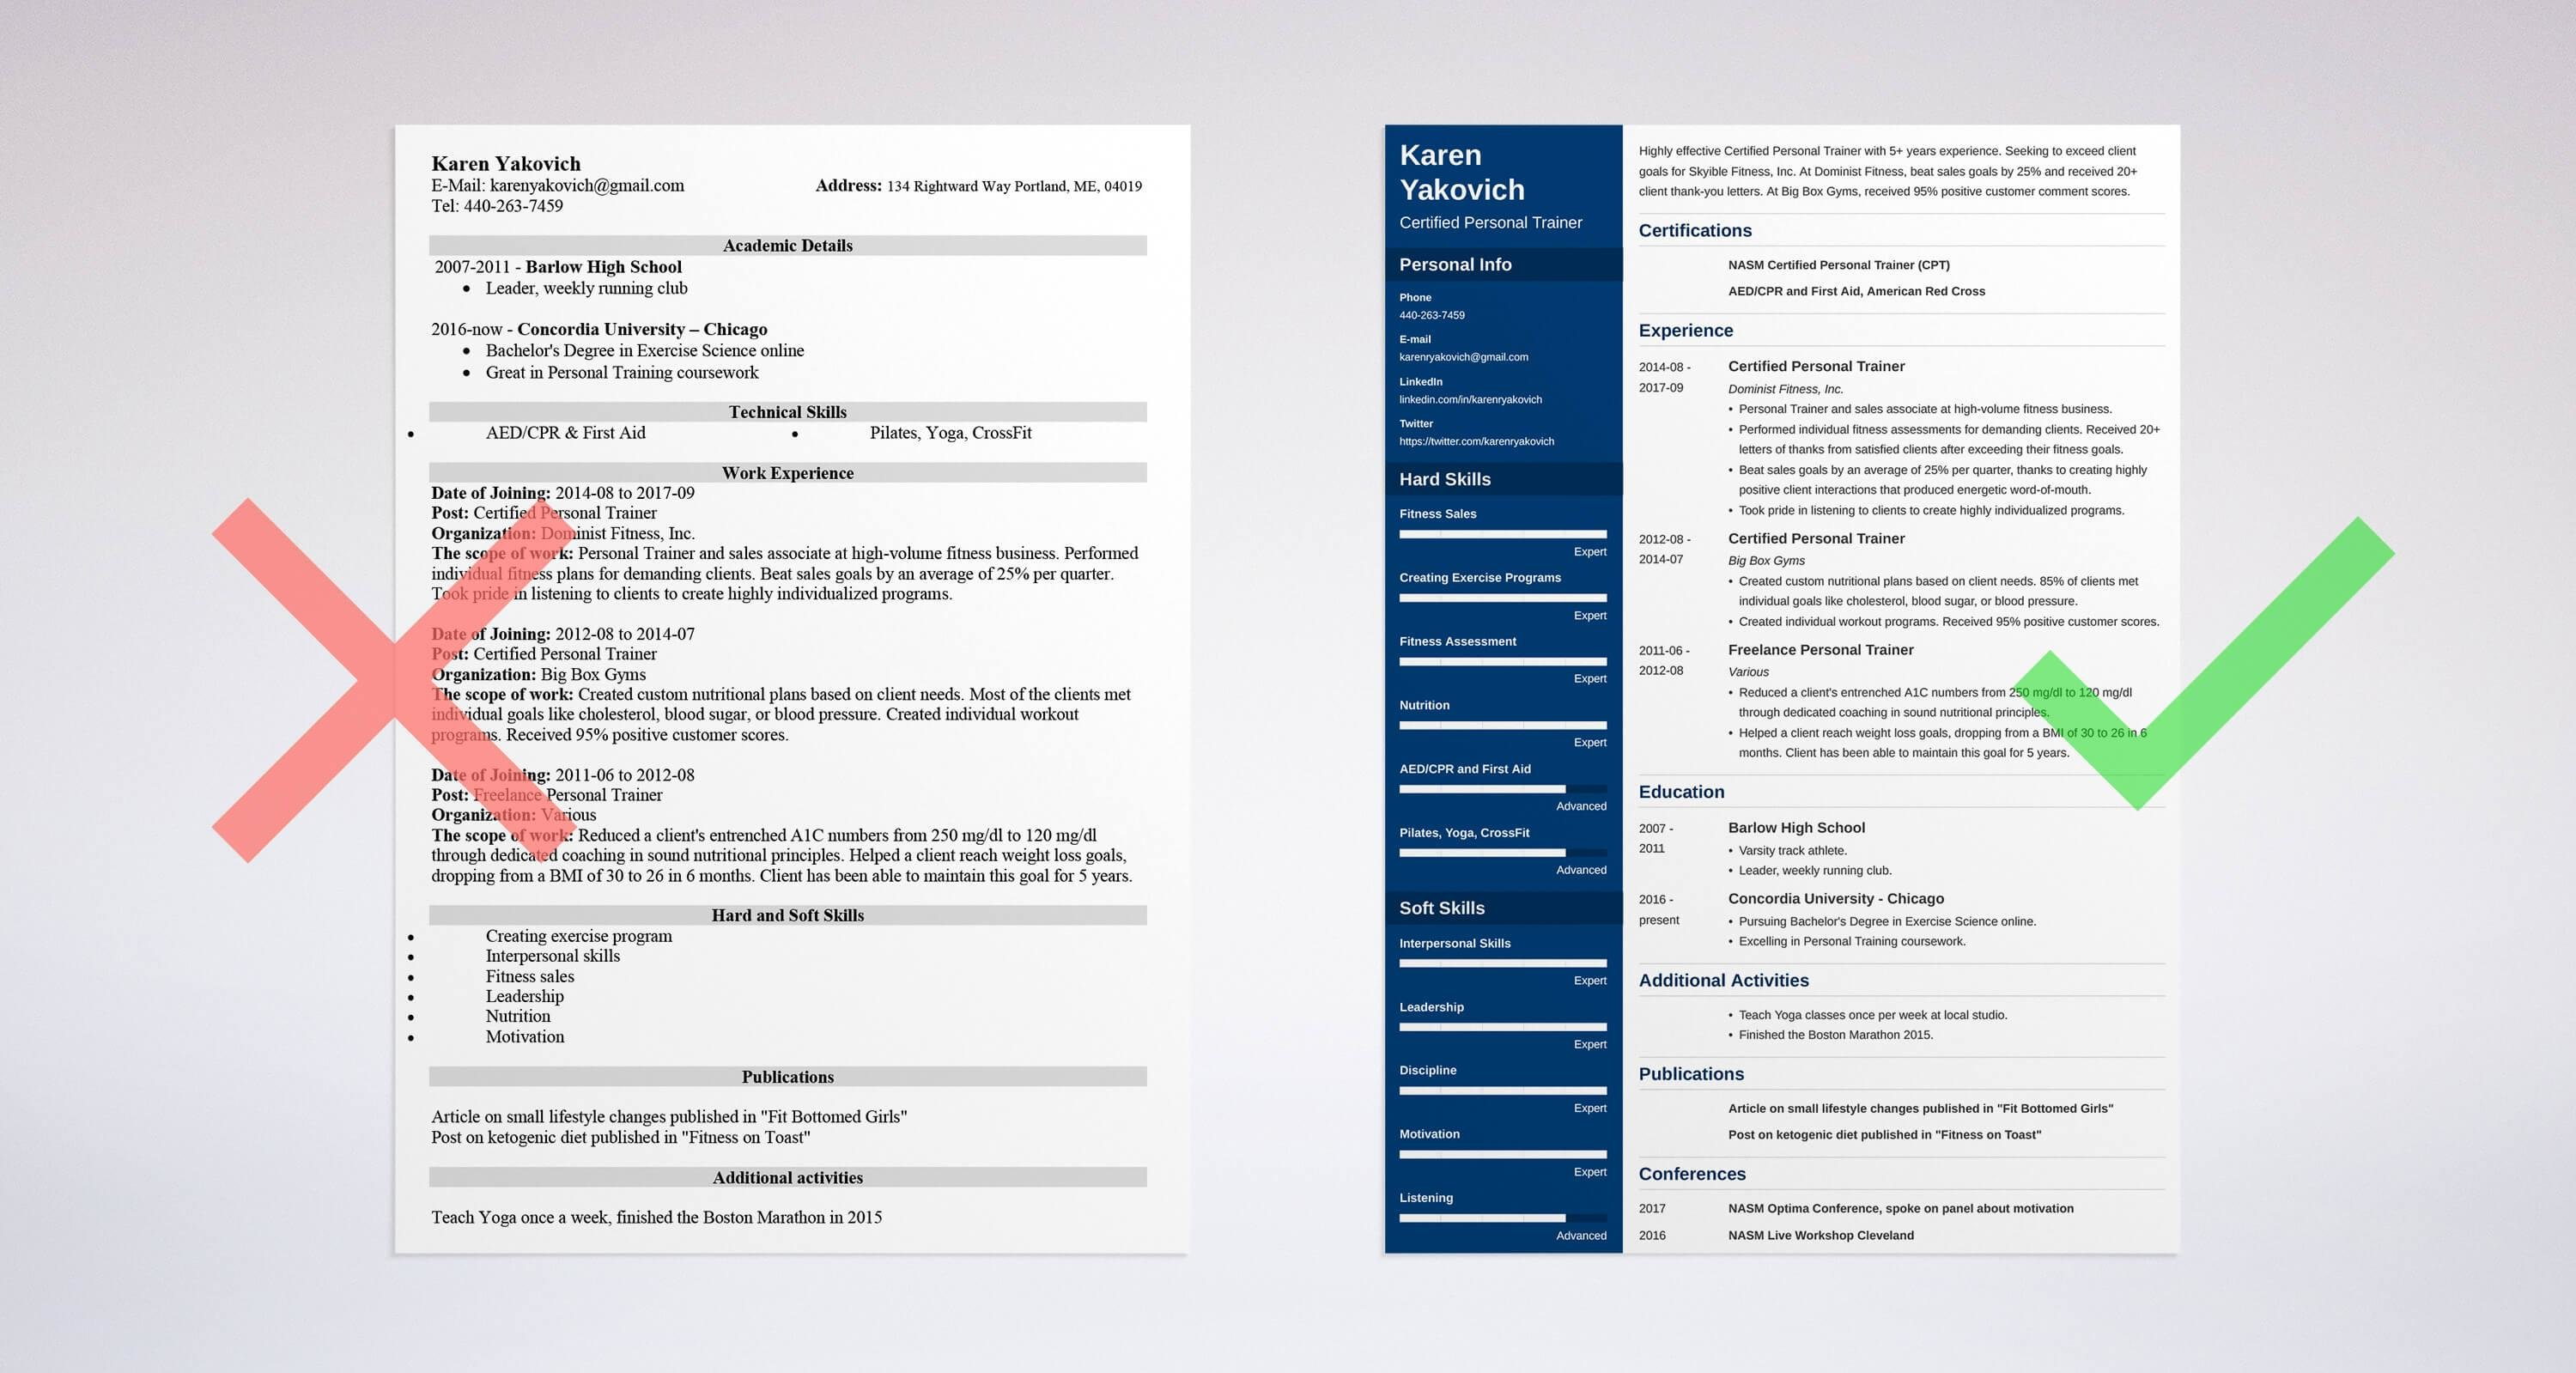 download personal trainer resume sample diplomatic regatta